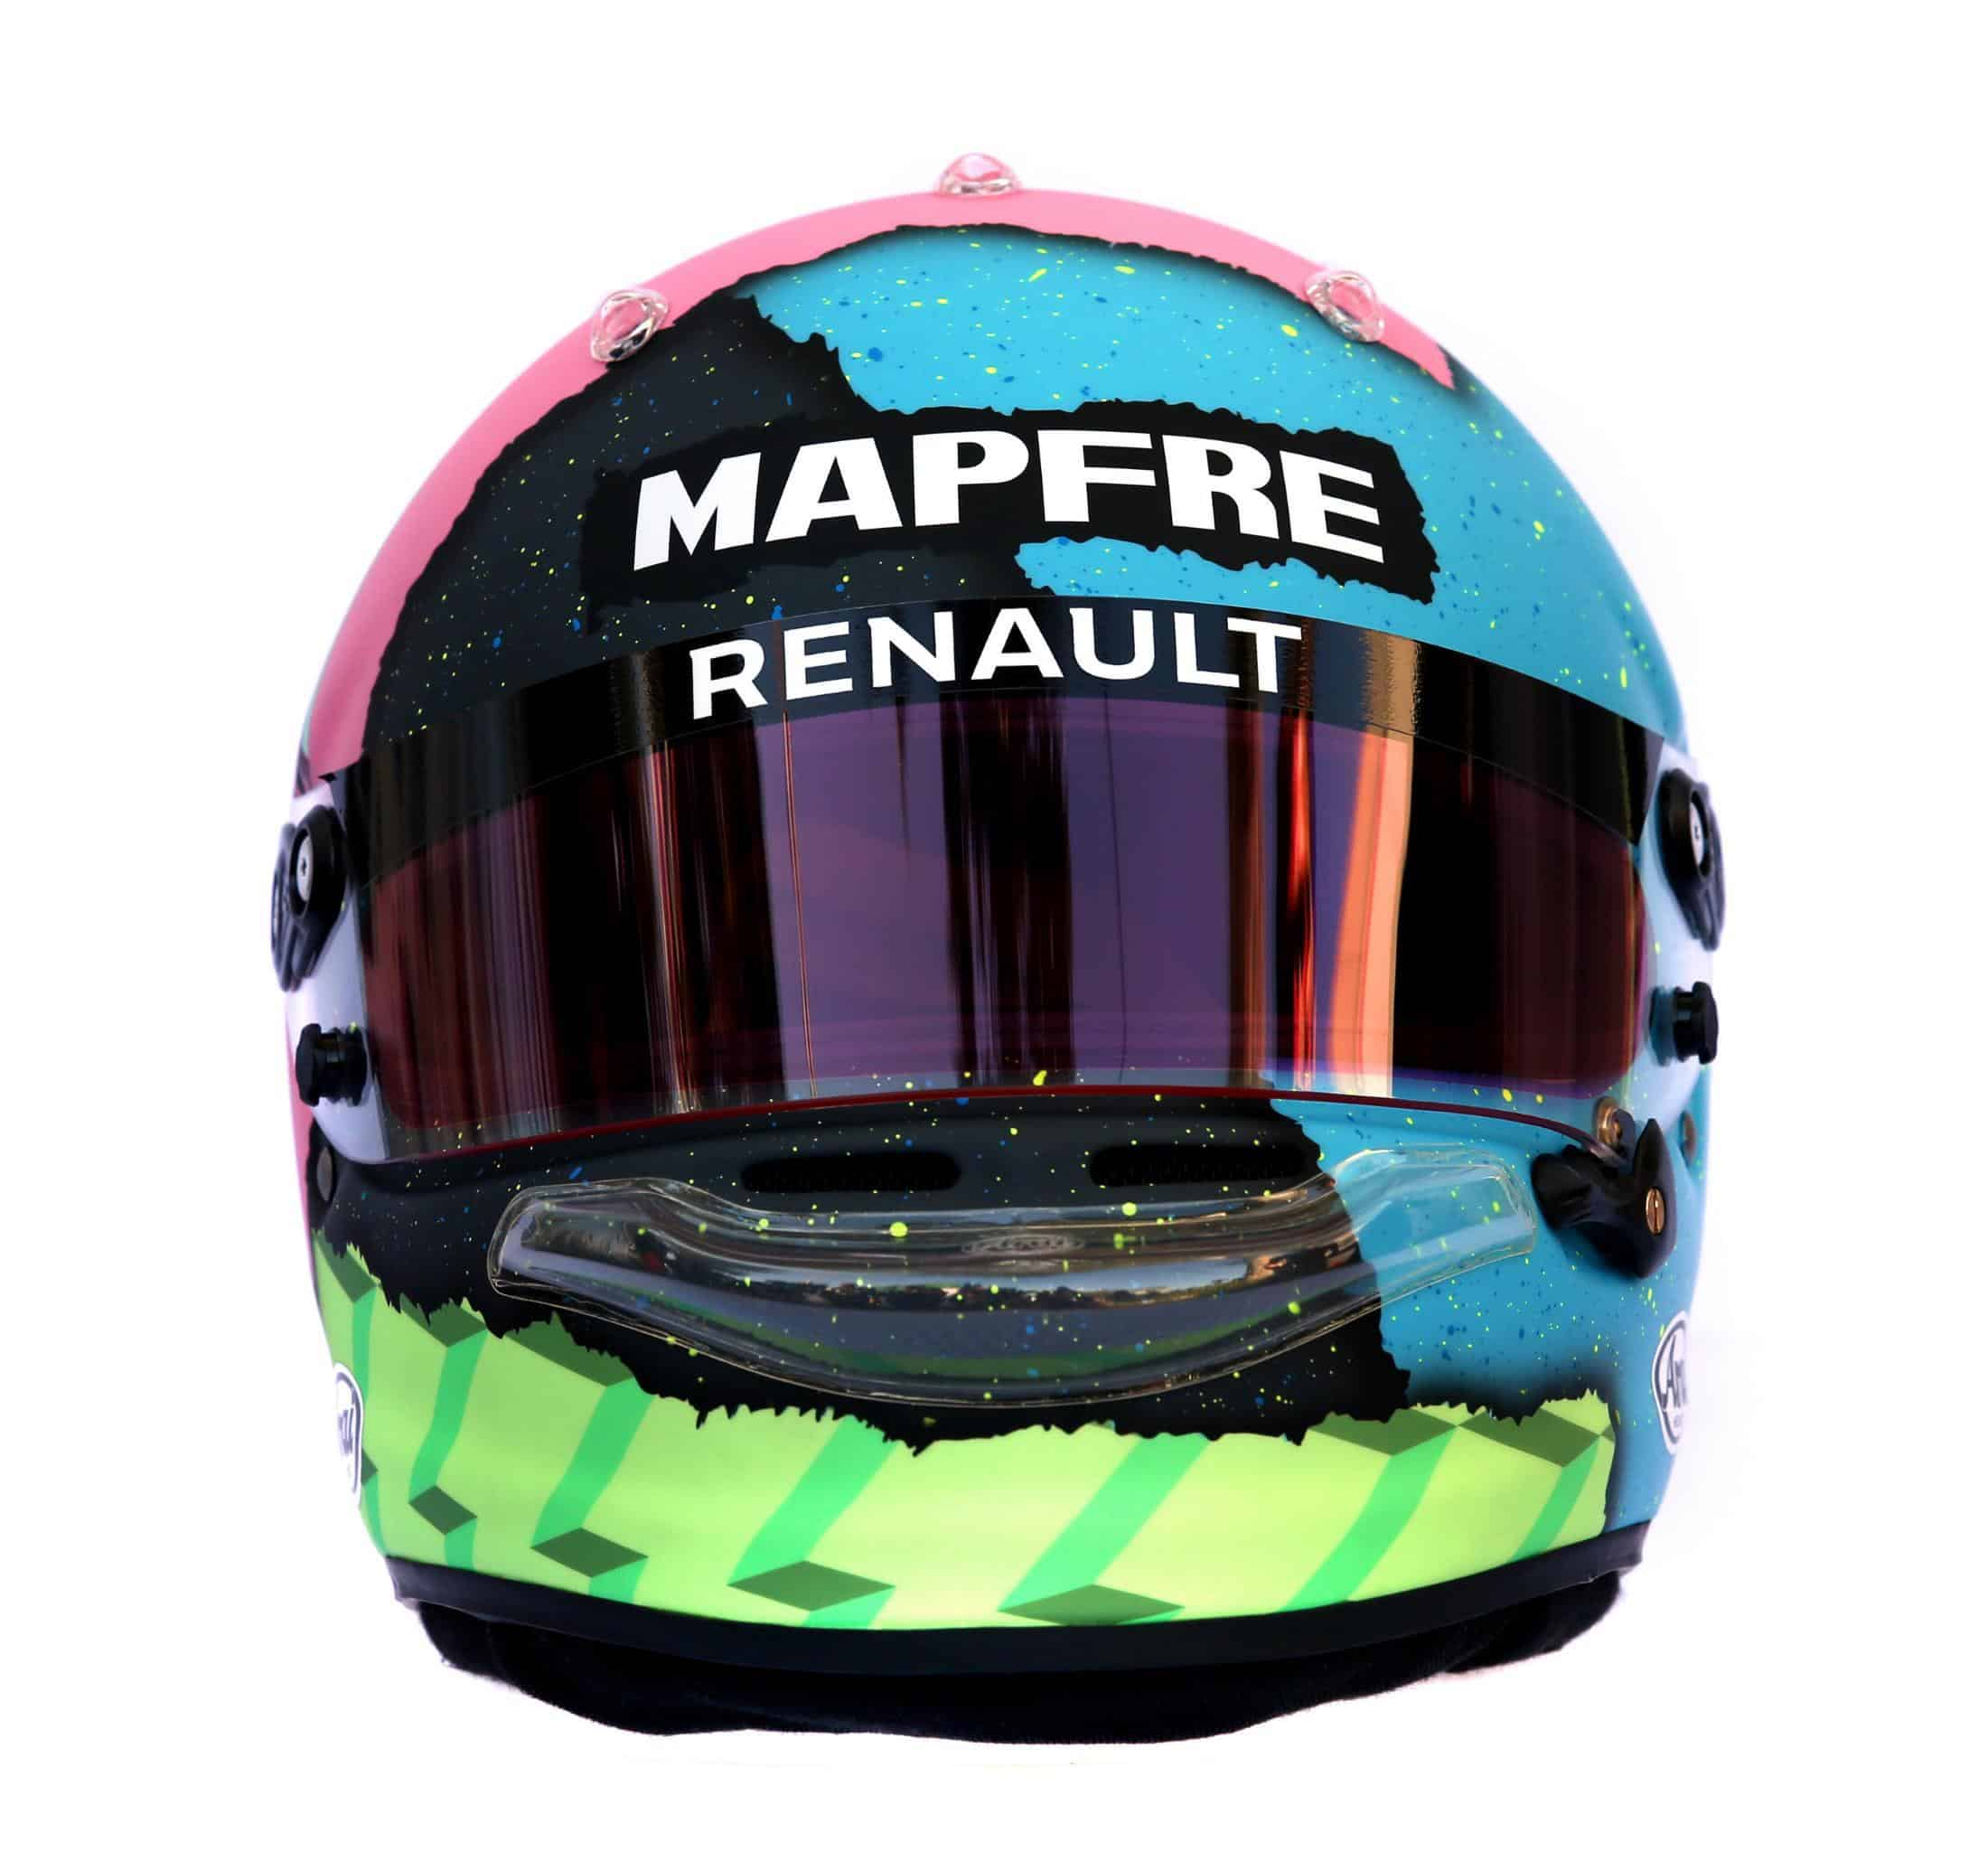 2019 F1 Daniel Ricciardo Renault helmet front Photo Renault Edited by MAXF1net